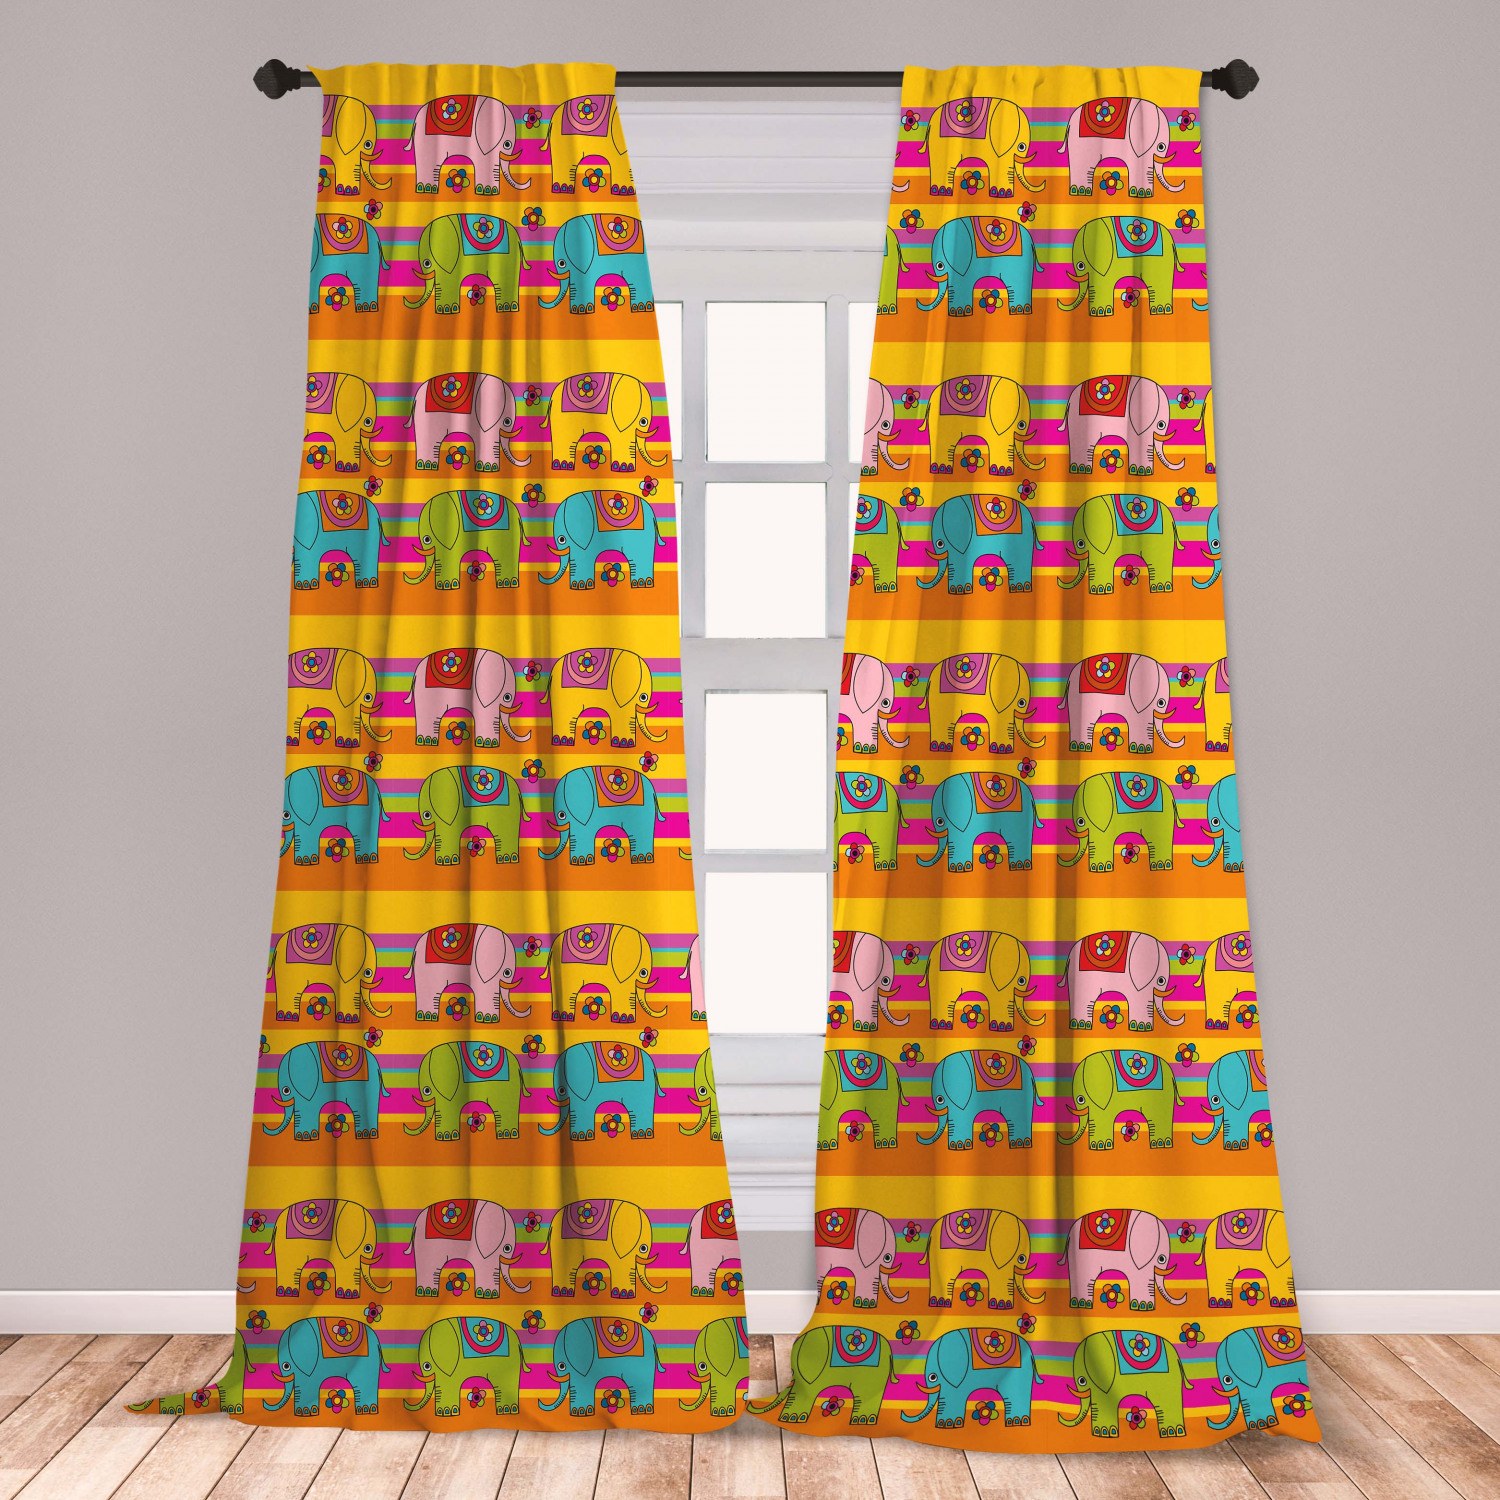 Elephant Nursery Curtains 2 Panels Set Funky Floral Eastern Elephants Colorful Hand Drawn Fantasy Window Drapes For Living Room Bedroom Multicolor By Ambesonne Walmart Com Walmart Com